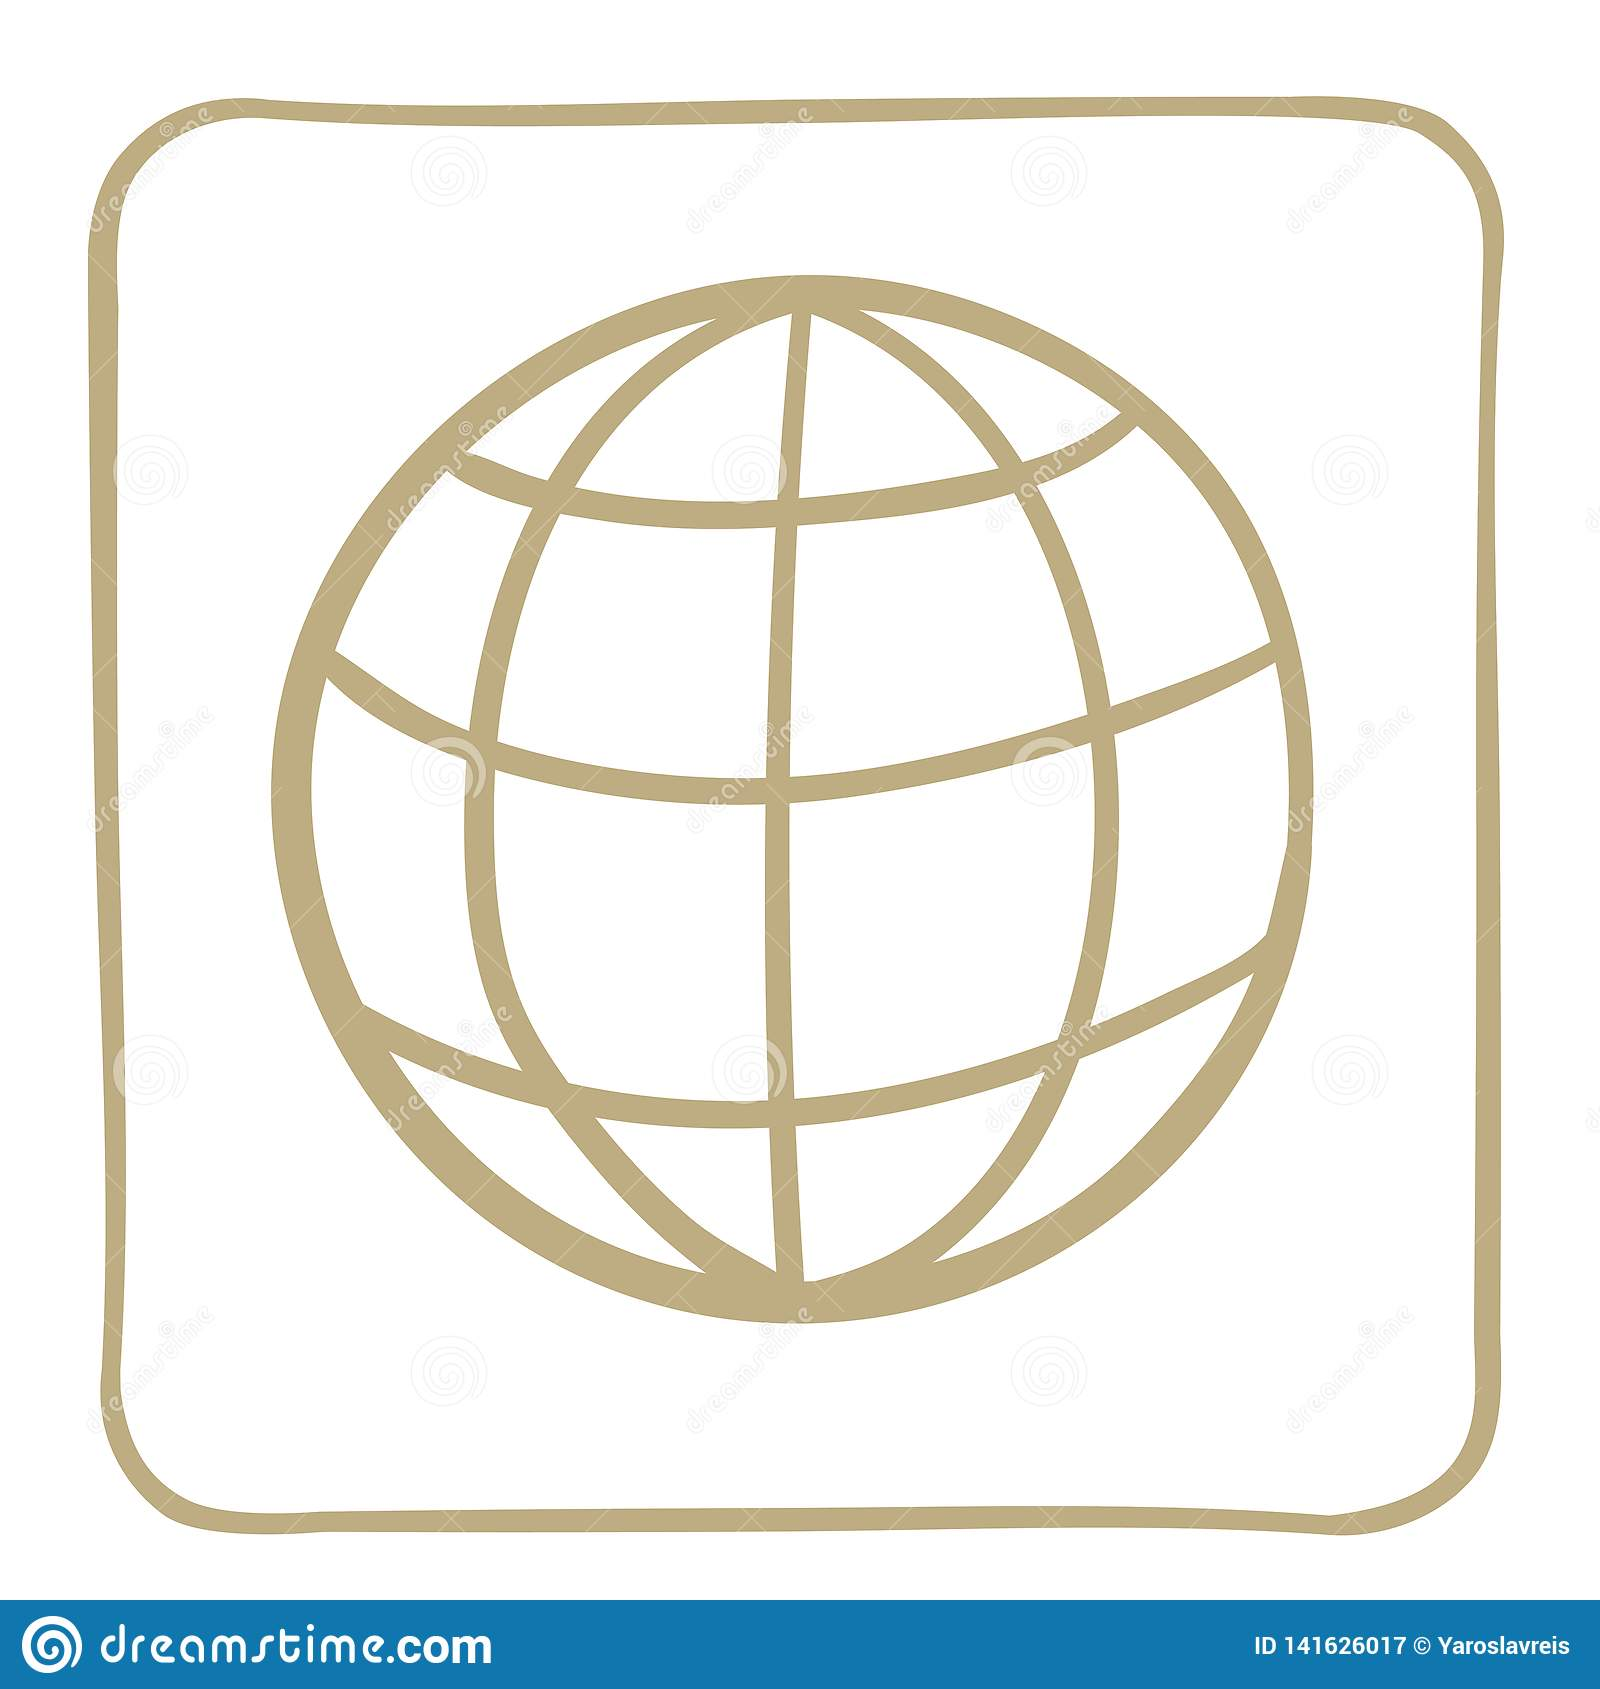 globe icon in light brown frame. Vector graphics.